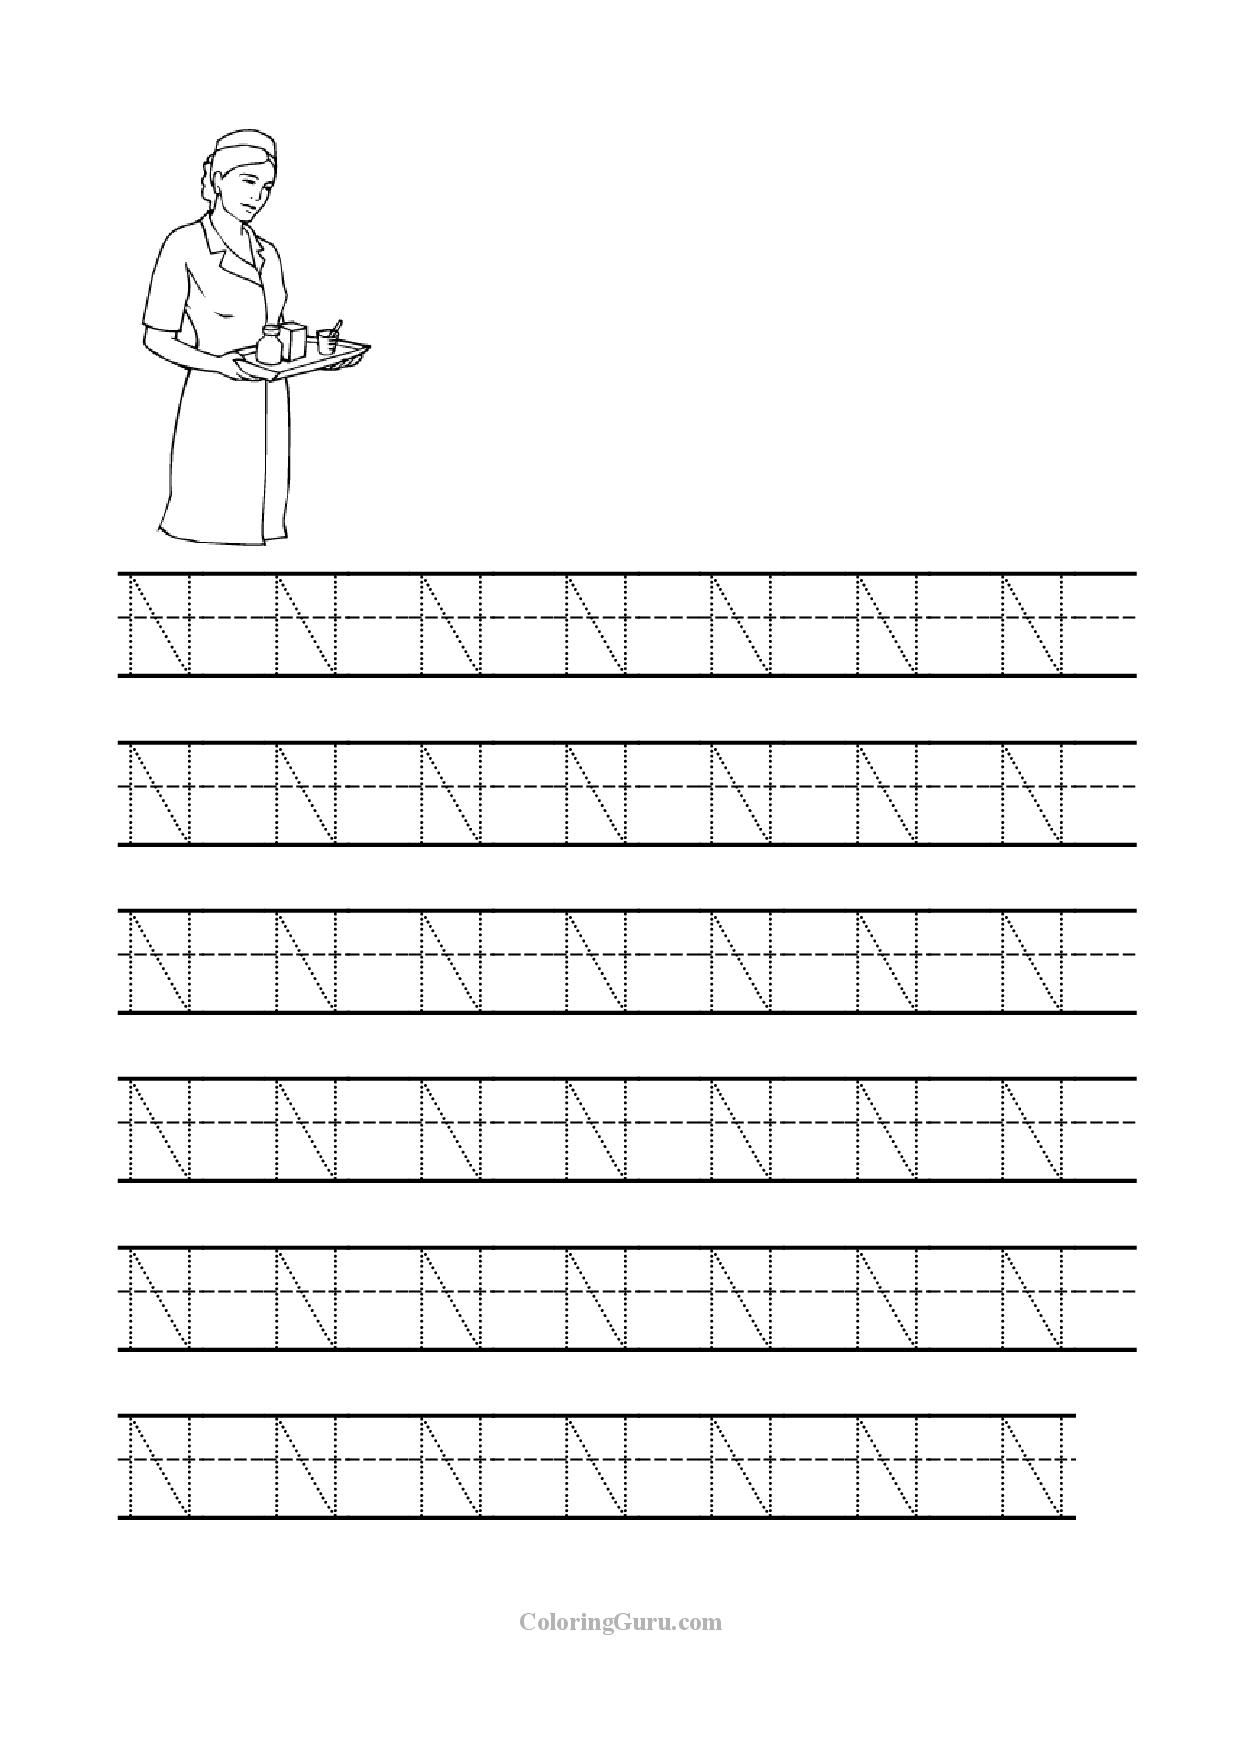 14 Interesting Letter N Worksheets for Kids | KittyBabyLove.com